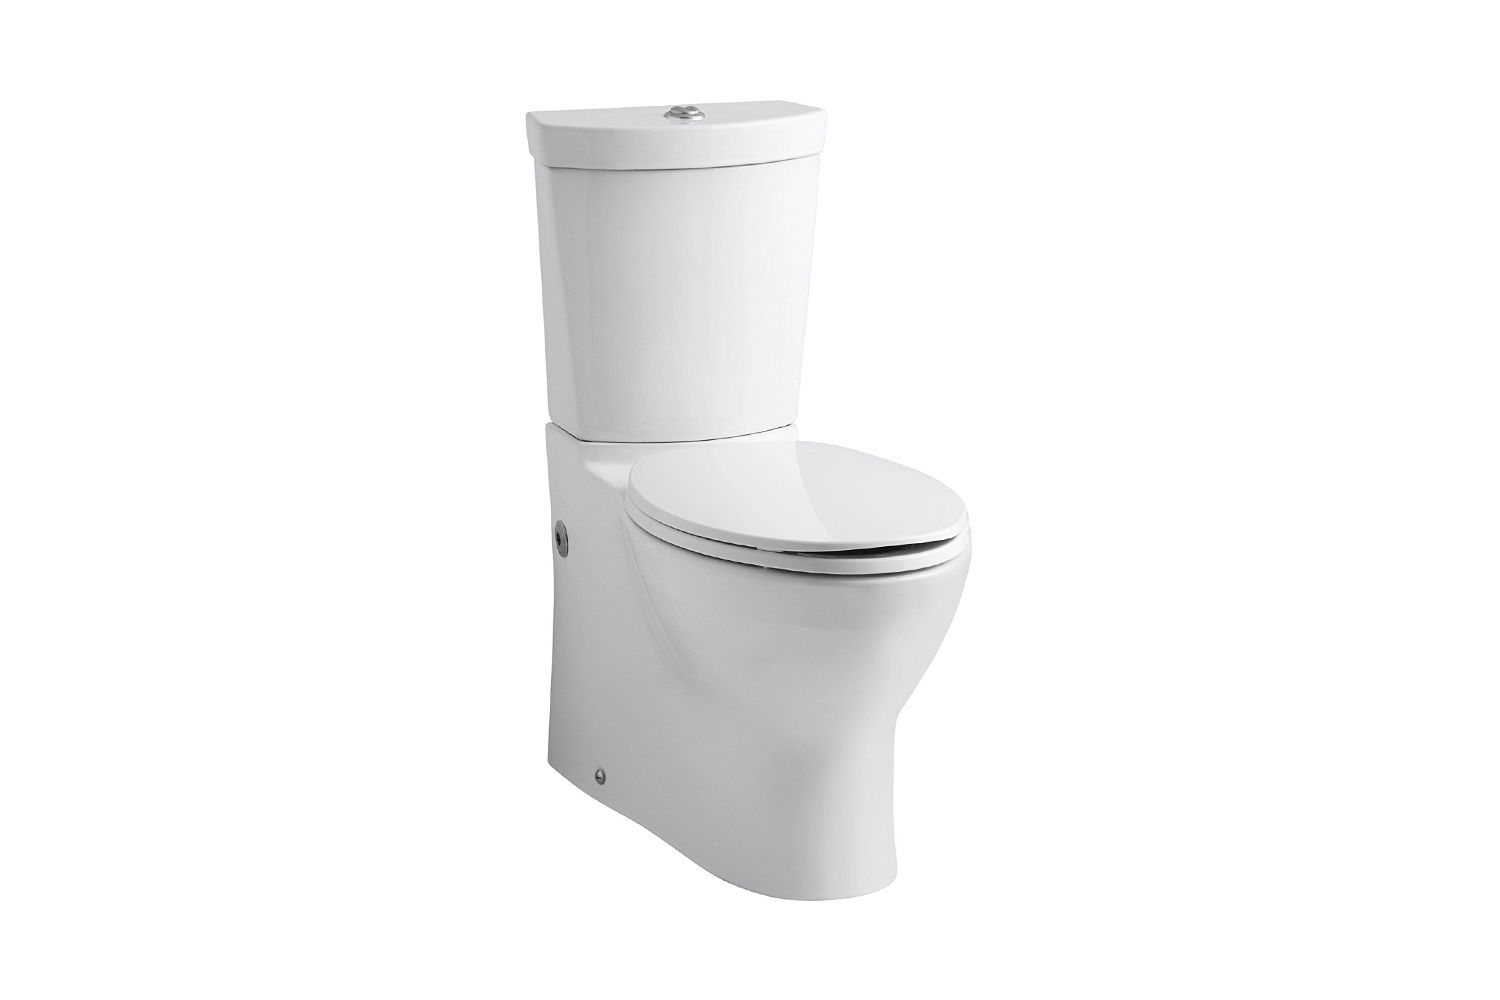 We Find The 7 Best Water Conserving Toilets And Stylish Too